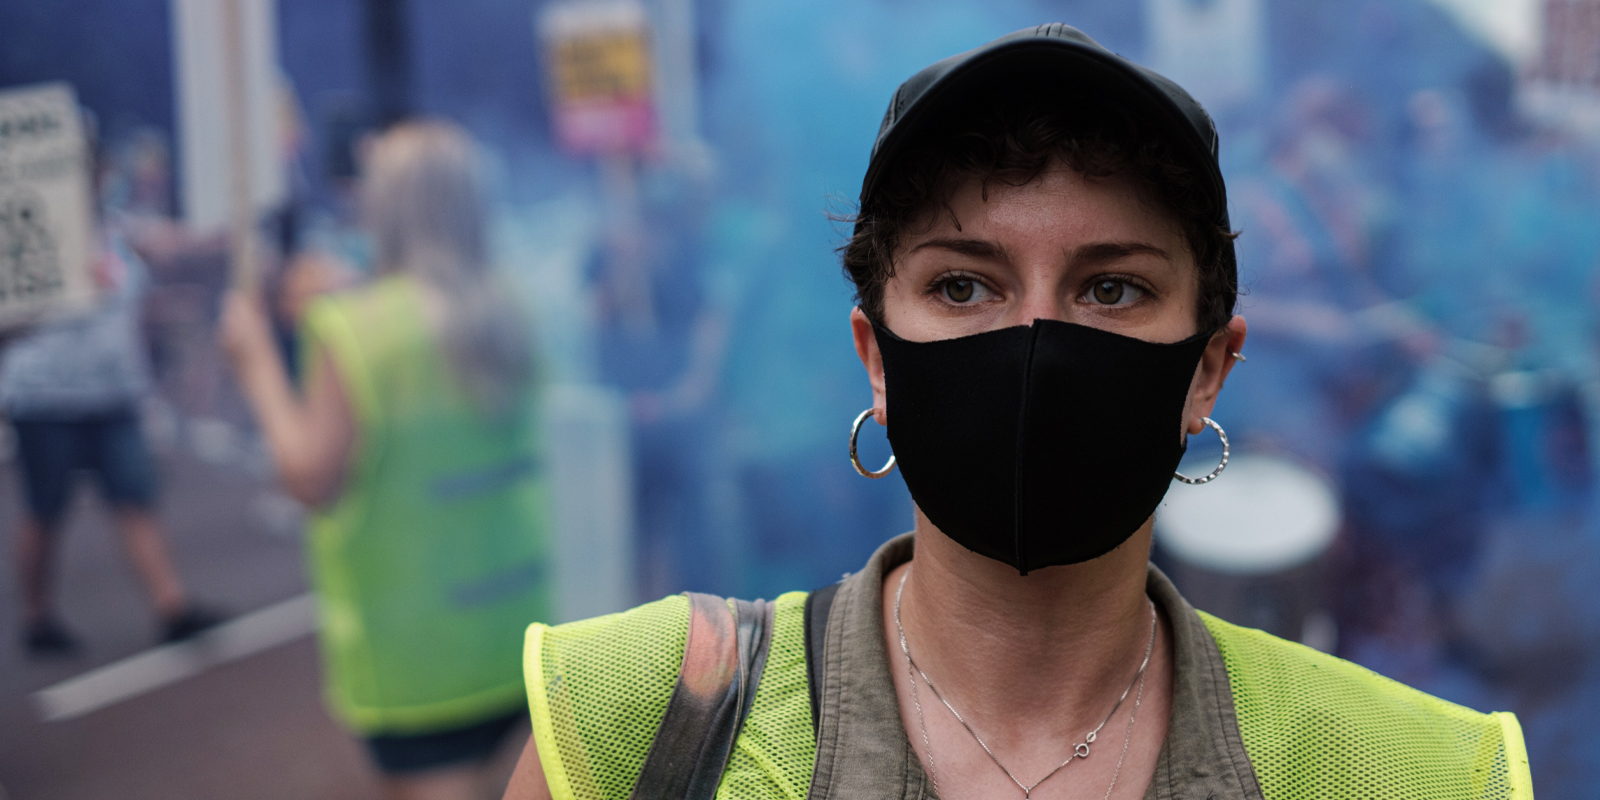 An image of a protest with a woman portrait covering her face with a mask